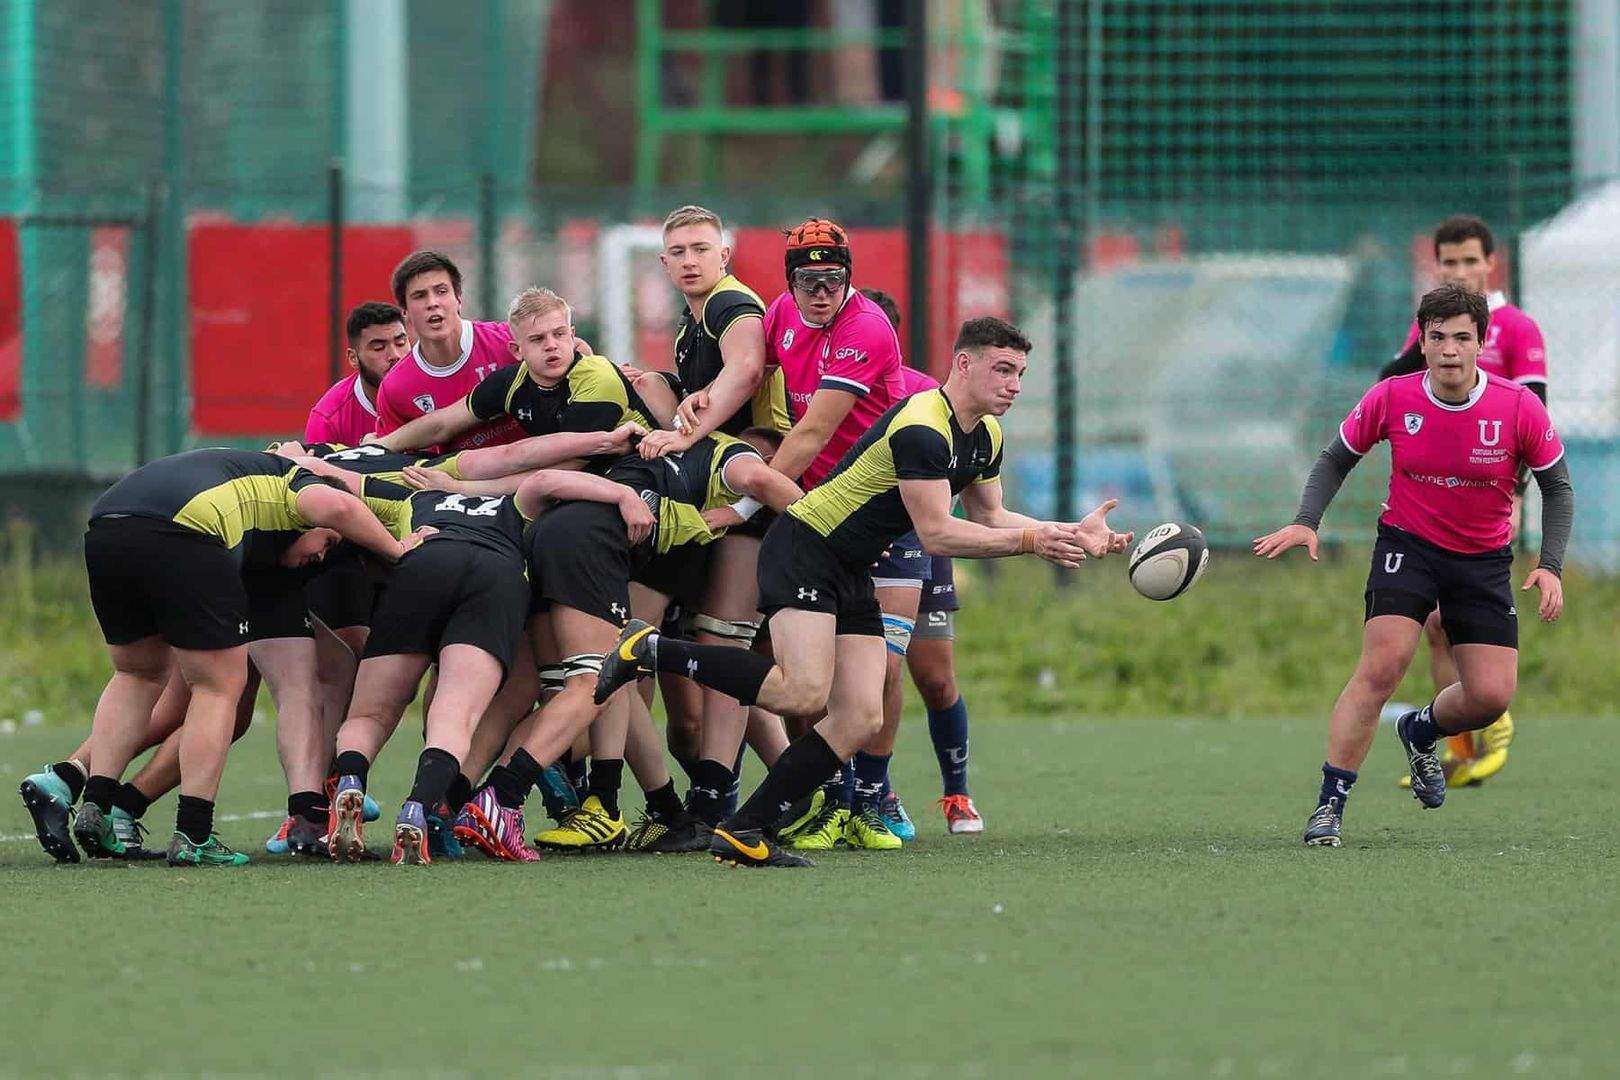 Coventry College Rugby Squad playing a match